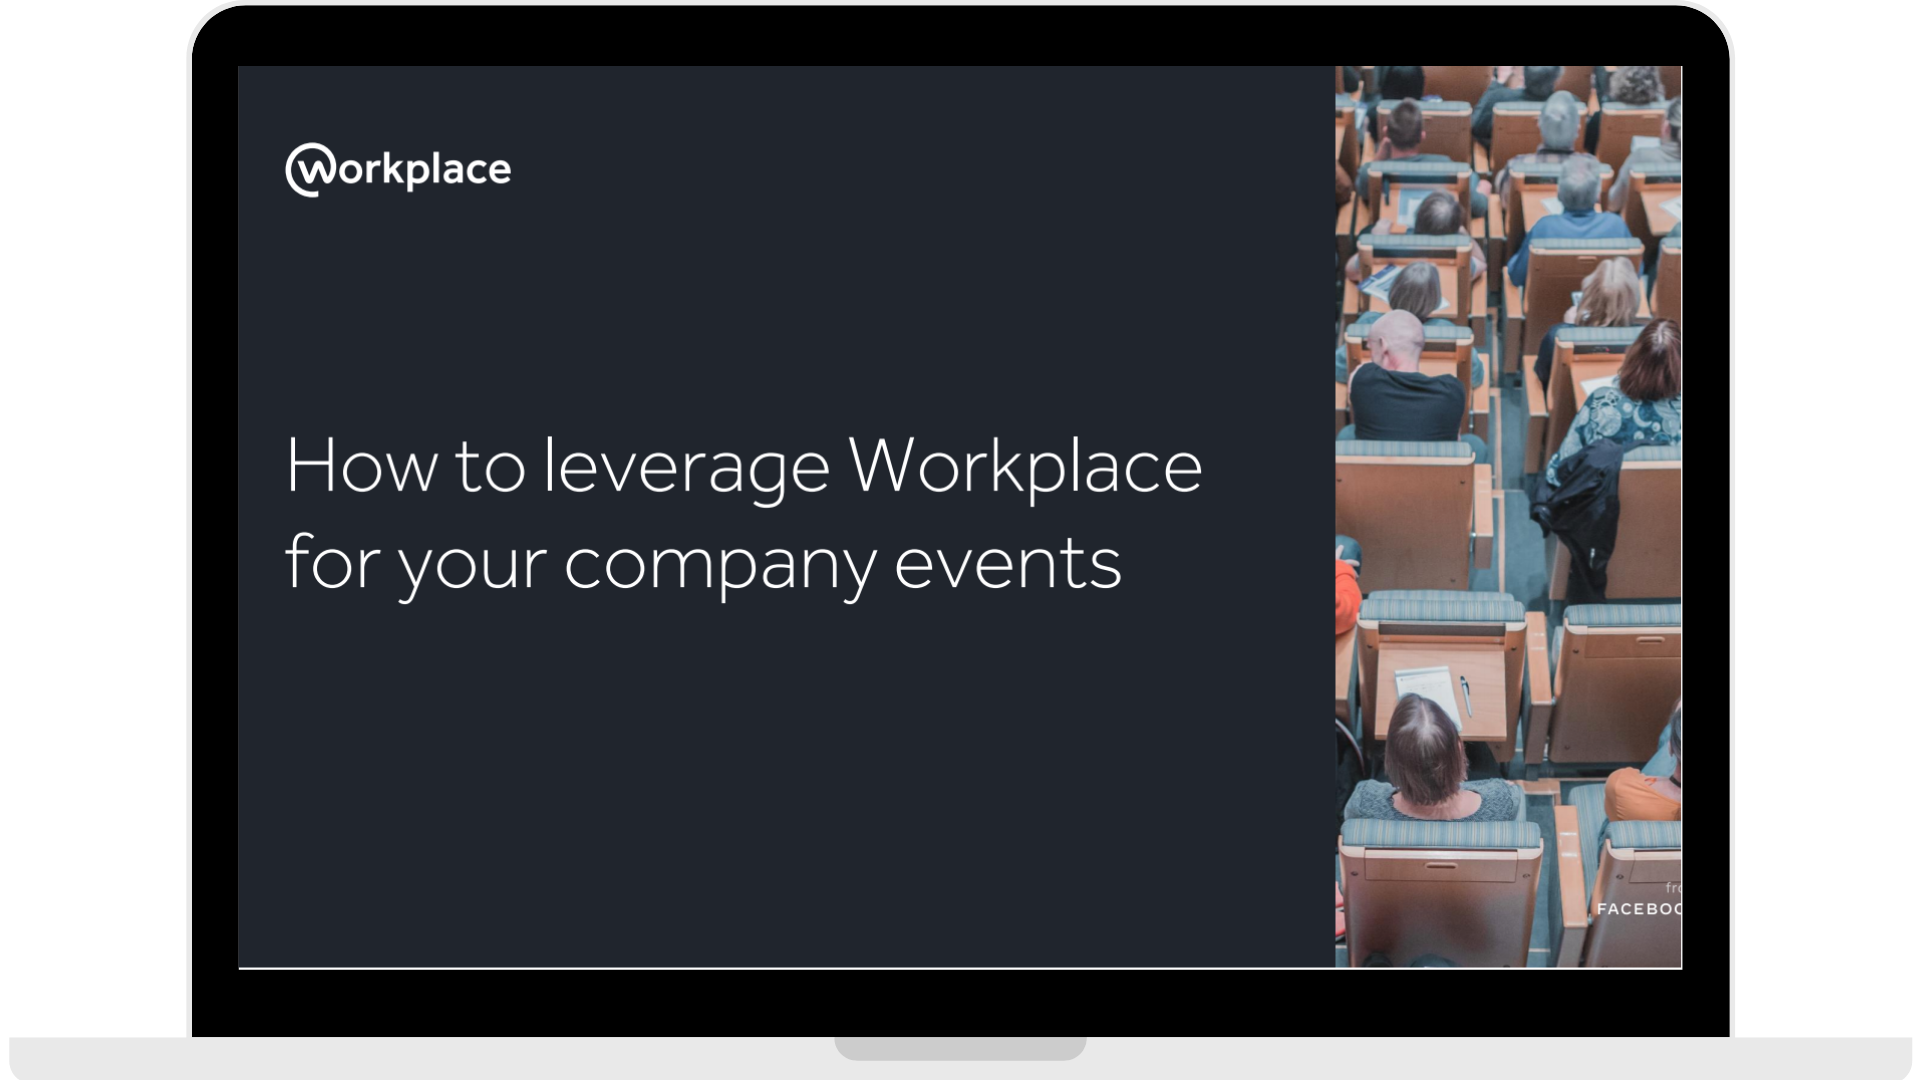 WPF - How to leverage Workplace for your company events - Laptop - Transparent